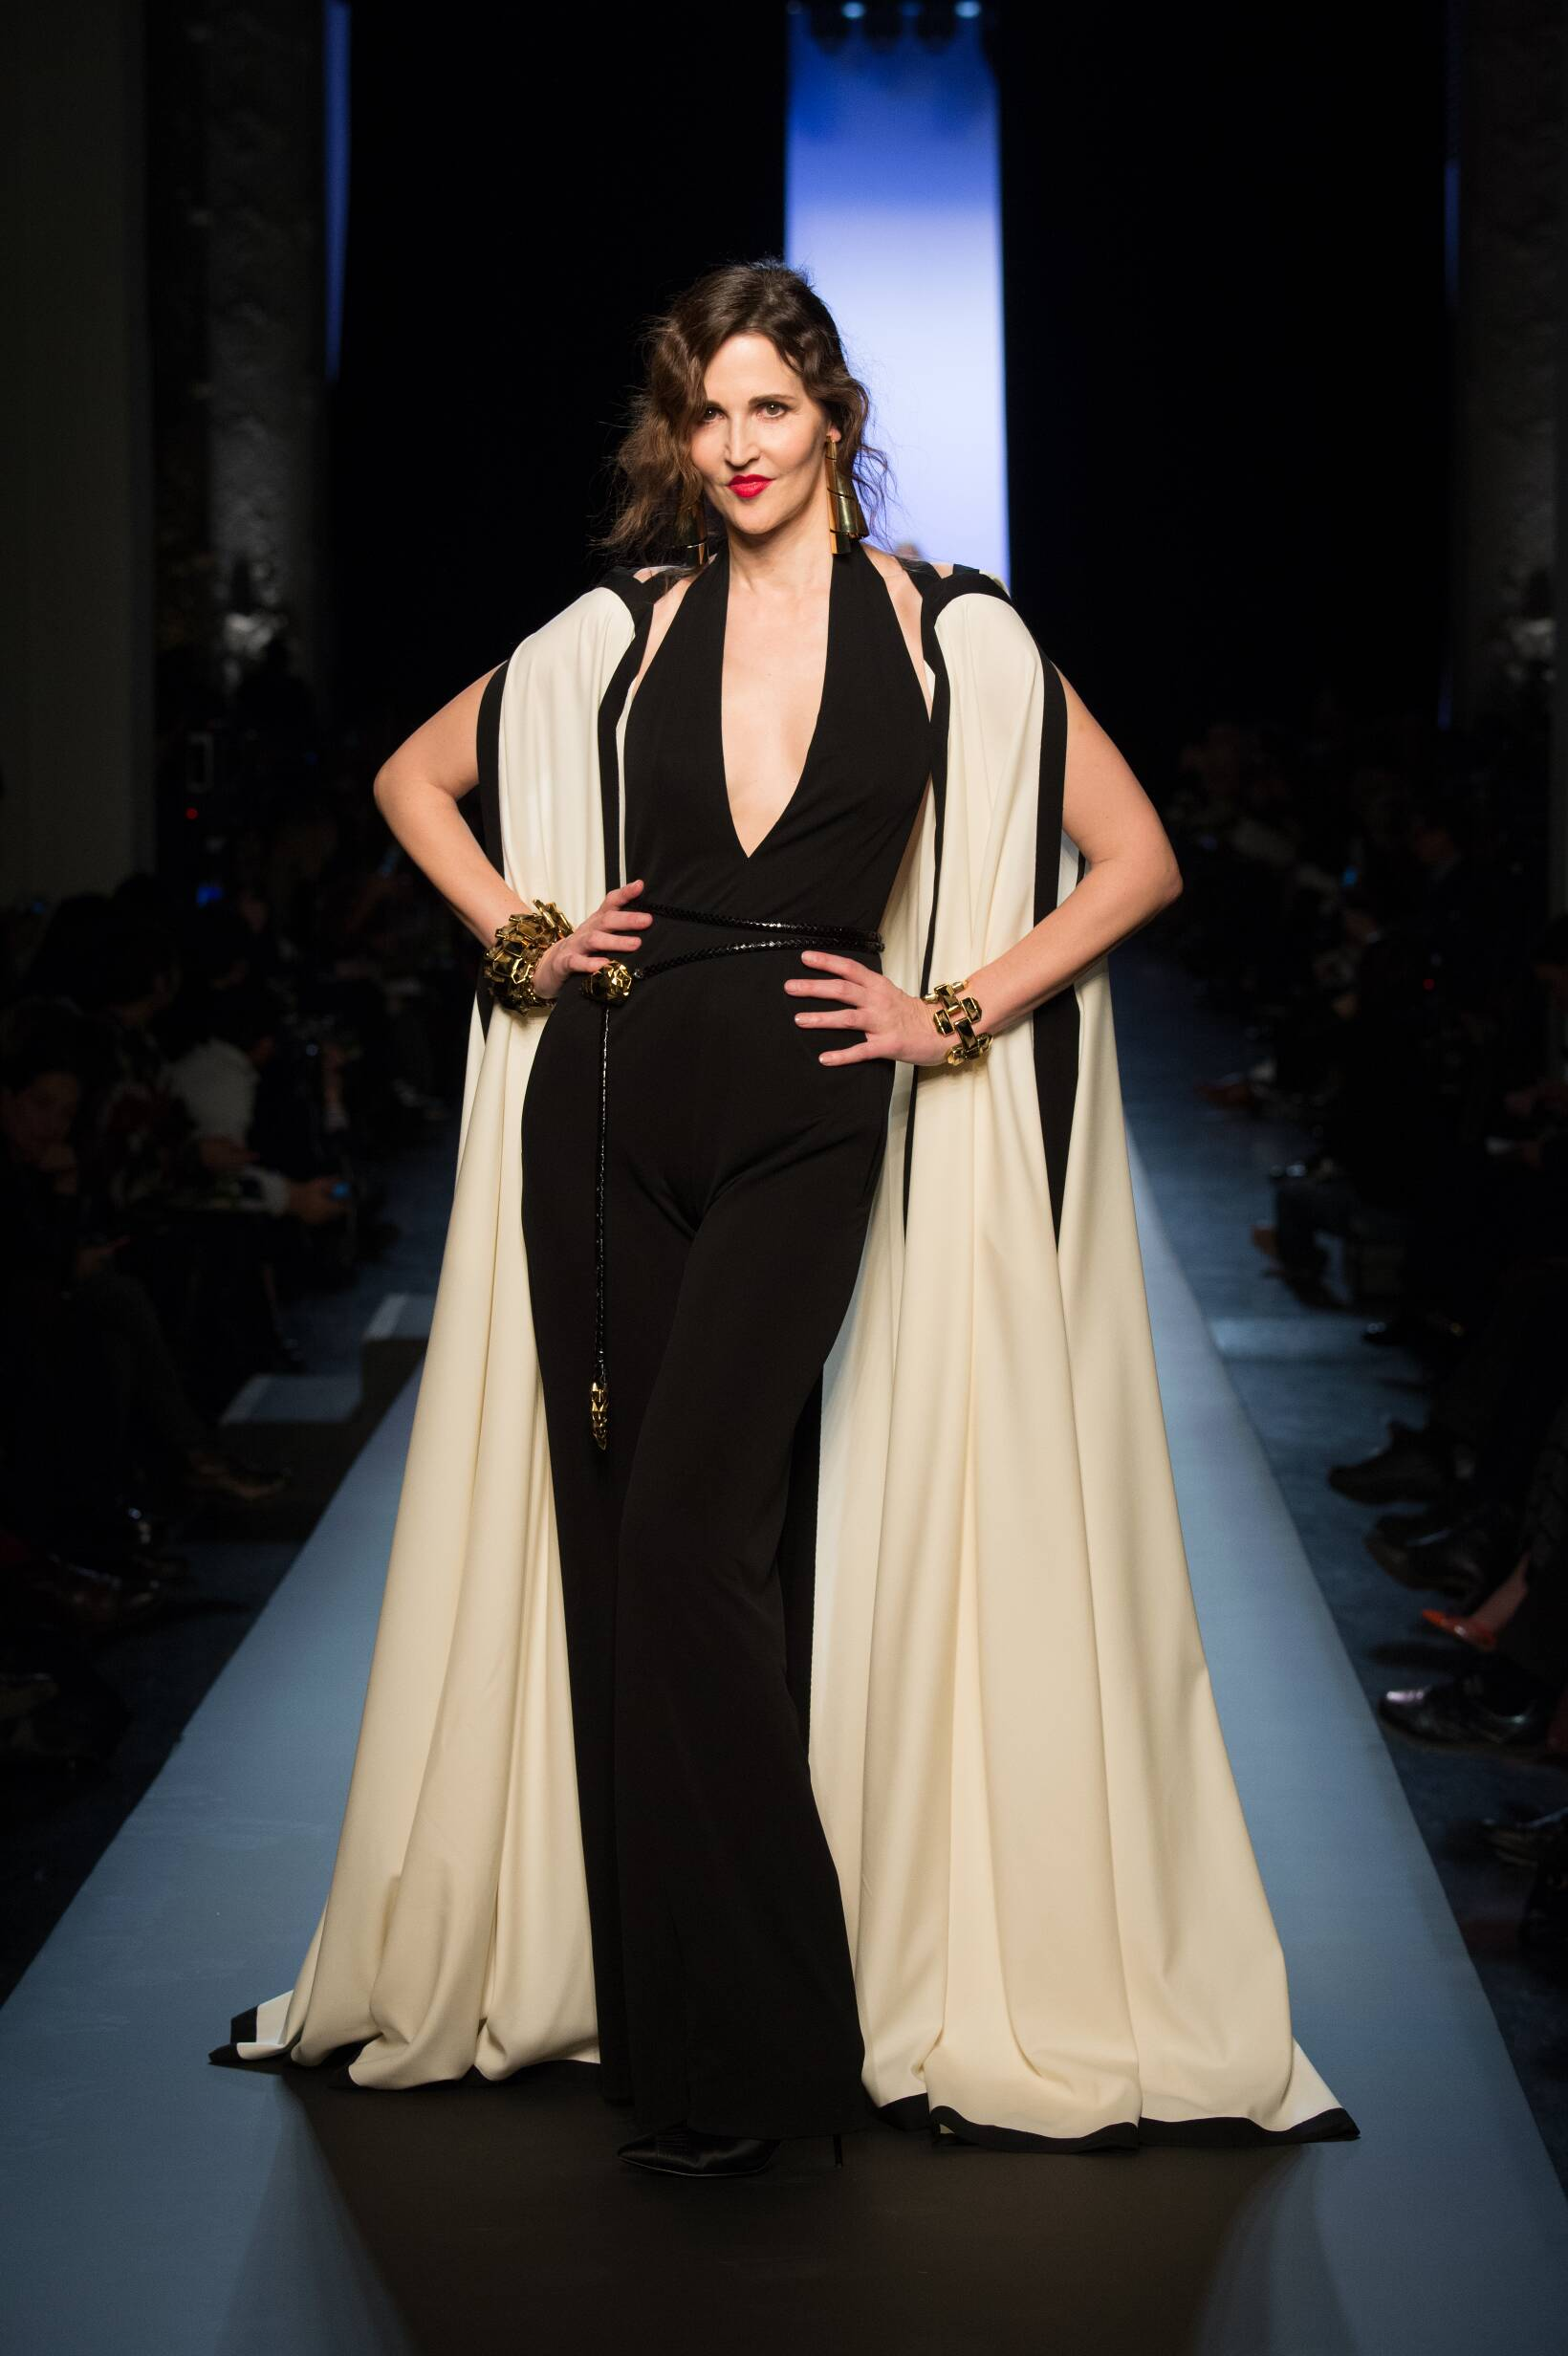 Jean Paul Gaultier Haute Couture Collection Fashion Show SS 2015